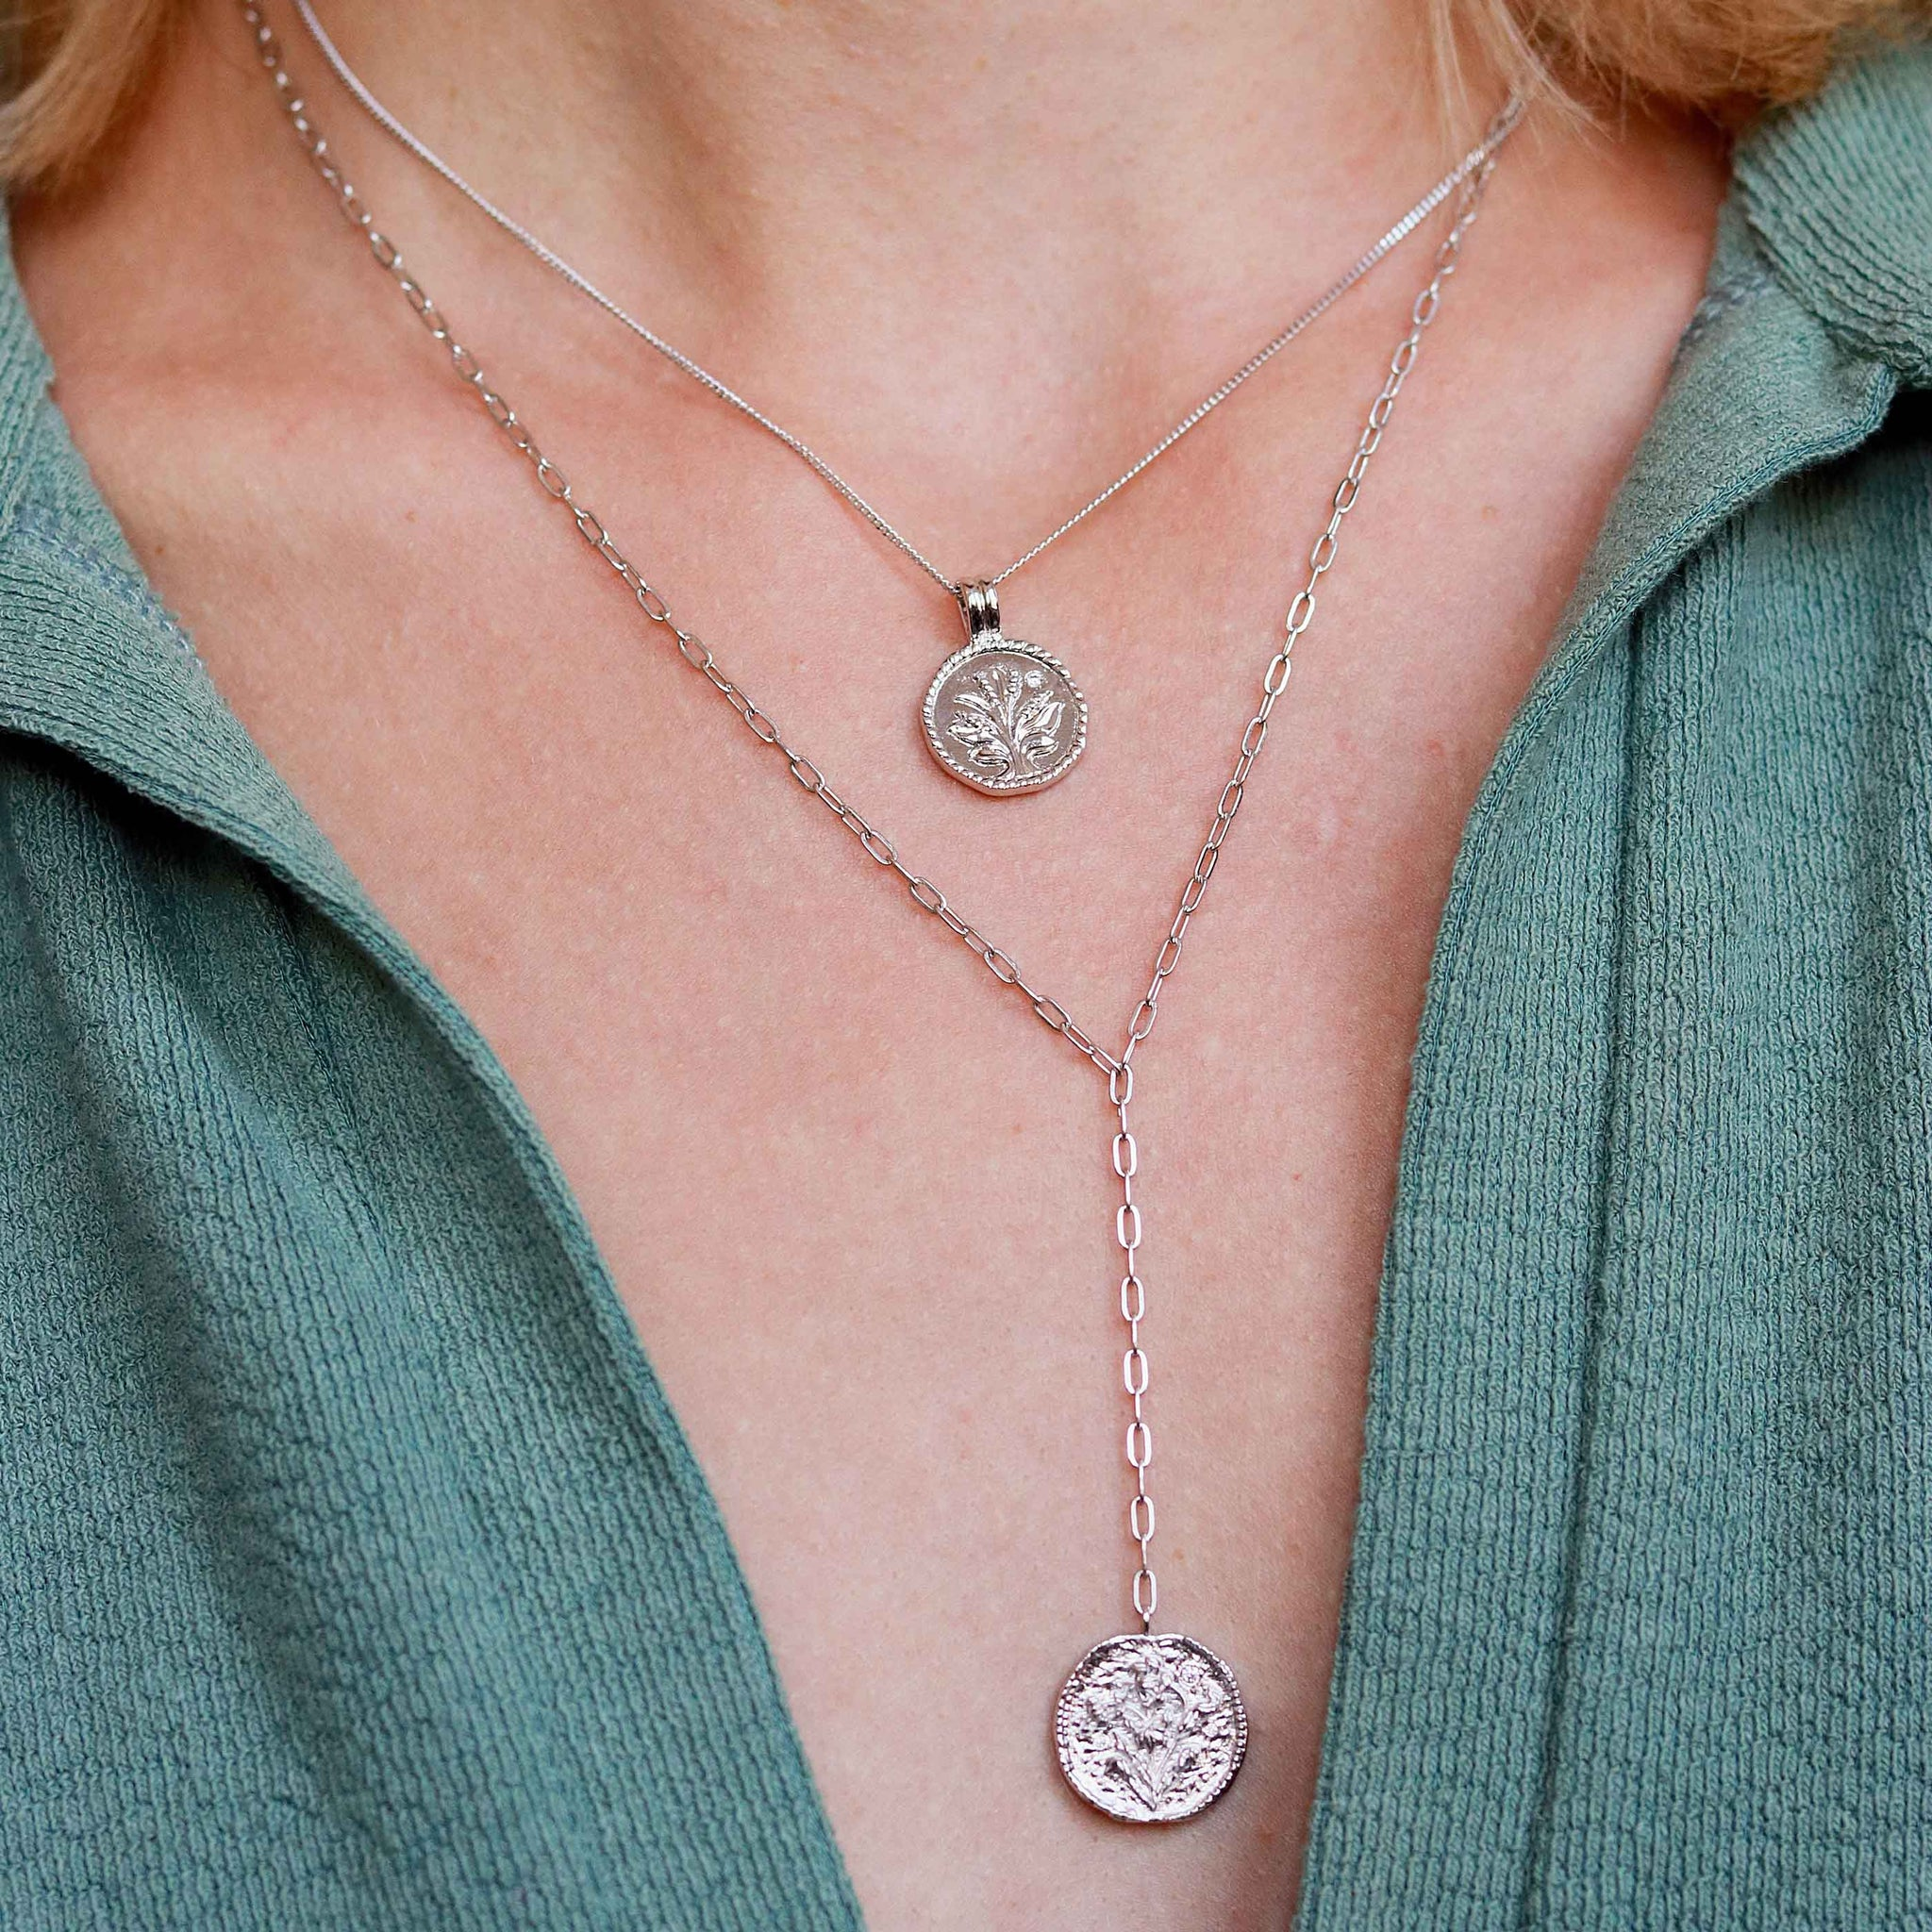 Blossom Coin Pendant Necklace in Silver worn with lariat necklace